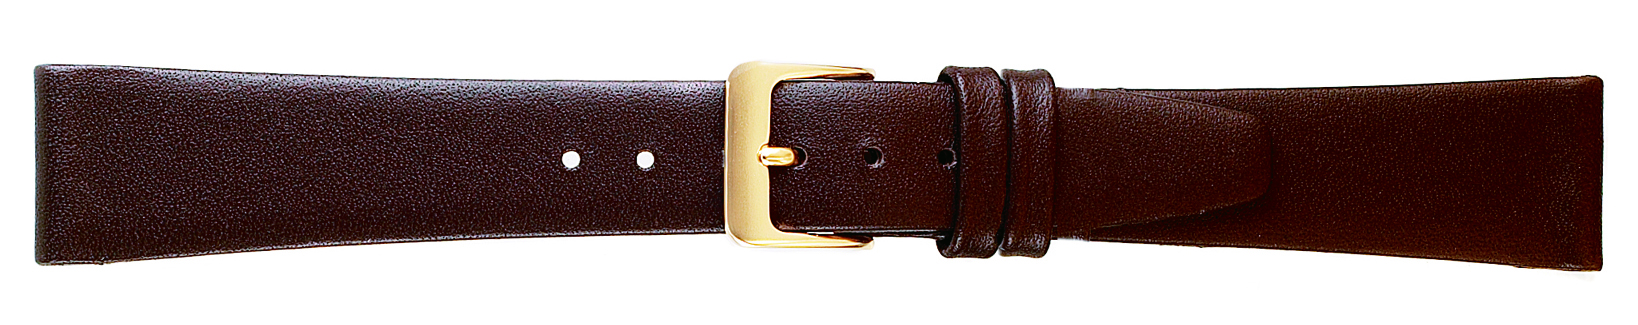 10MM Leather Band Brown Smooth Calf-0